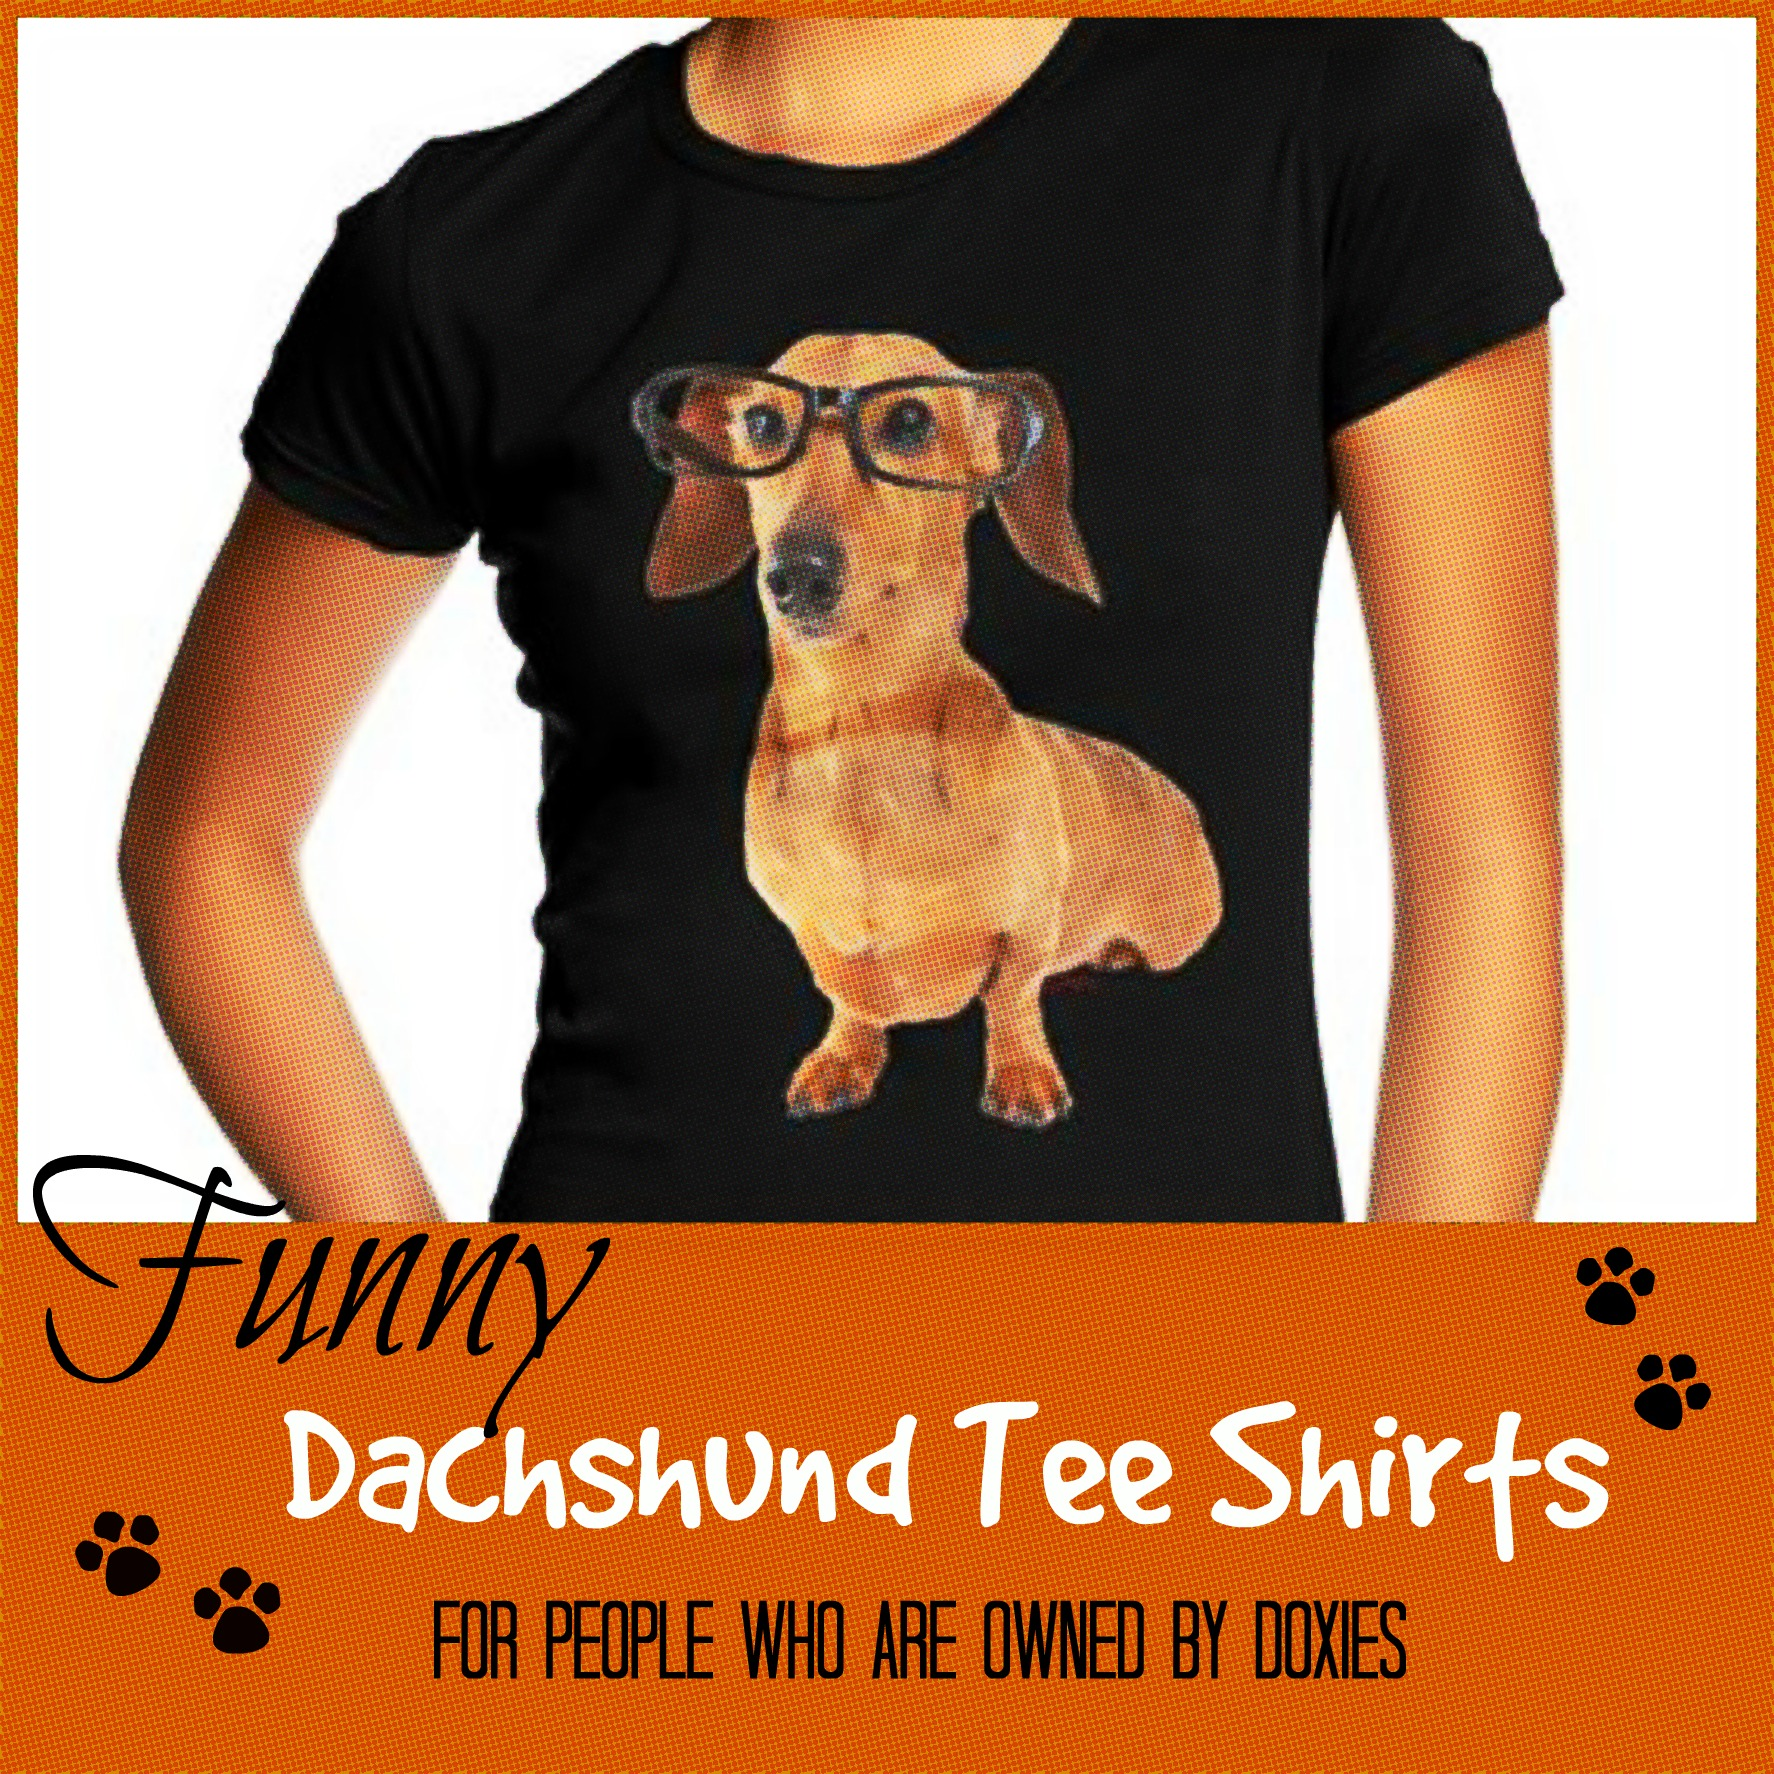 86cdbfc9b Funny Dachshund Tee Shirts for Those who are Owned by Doxies